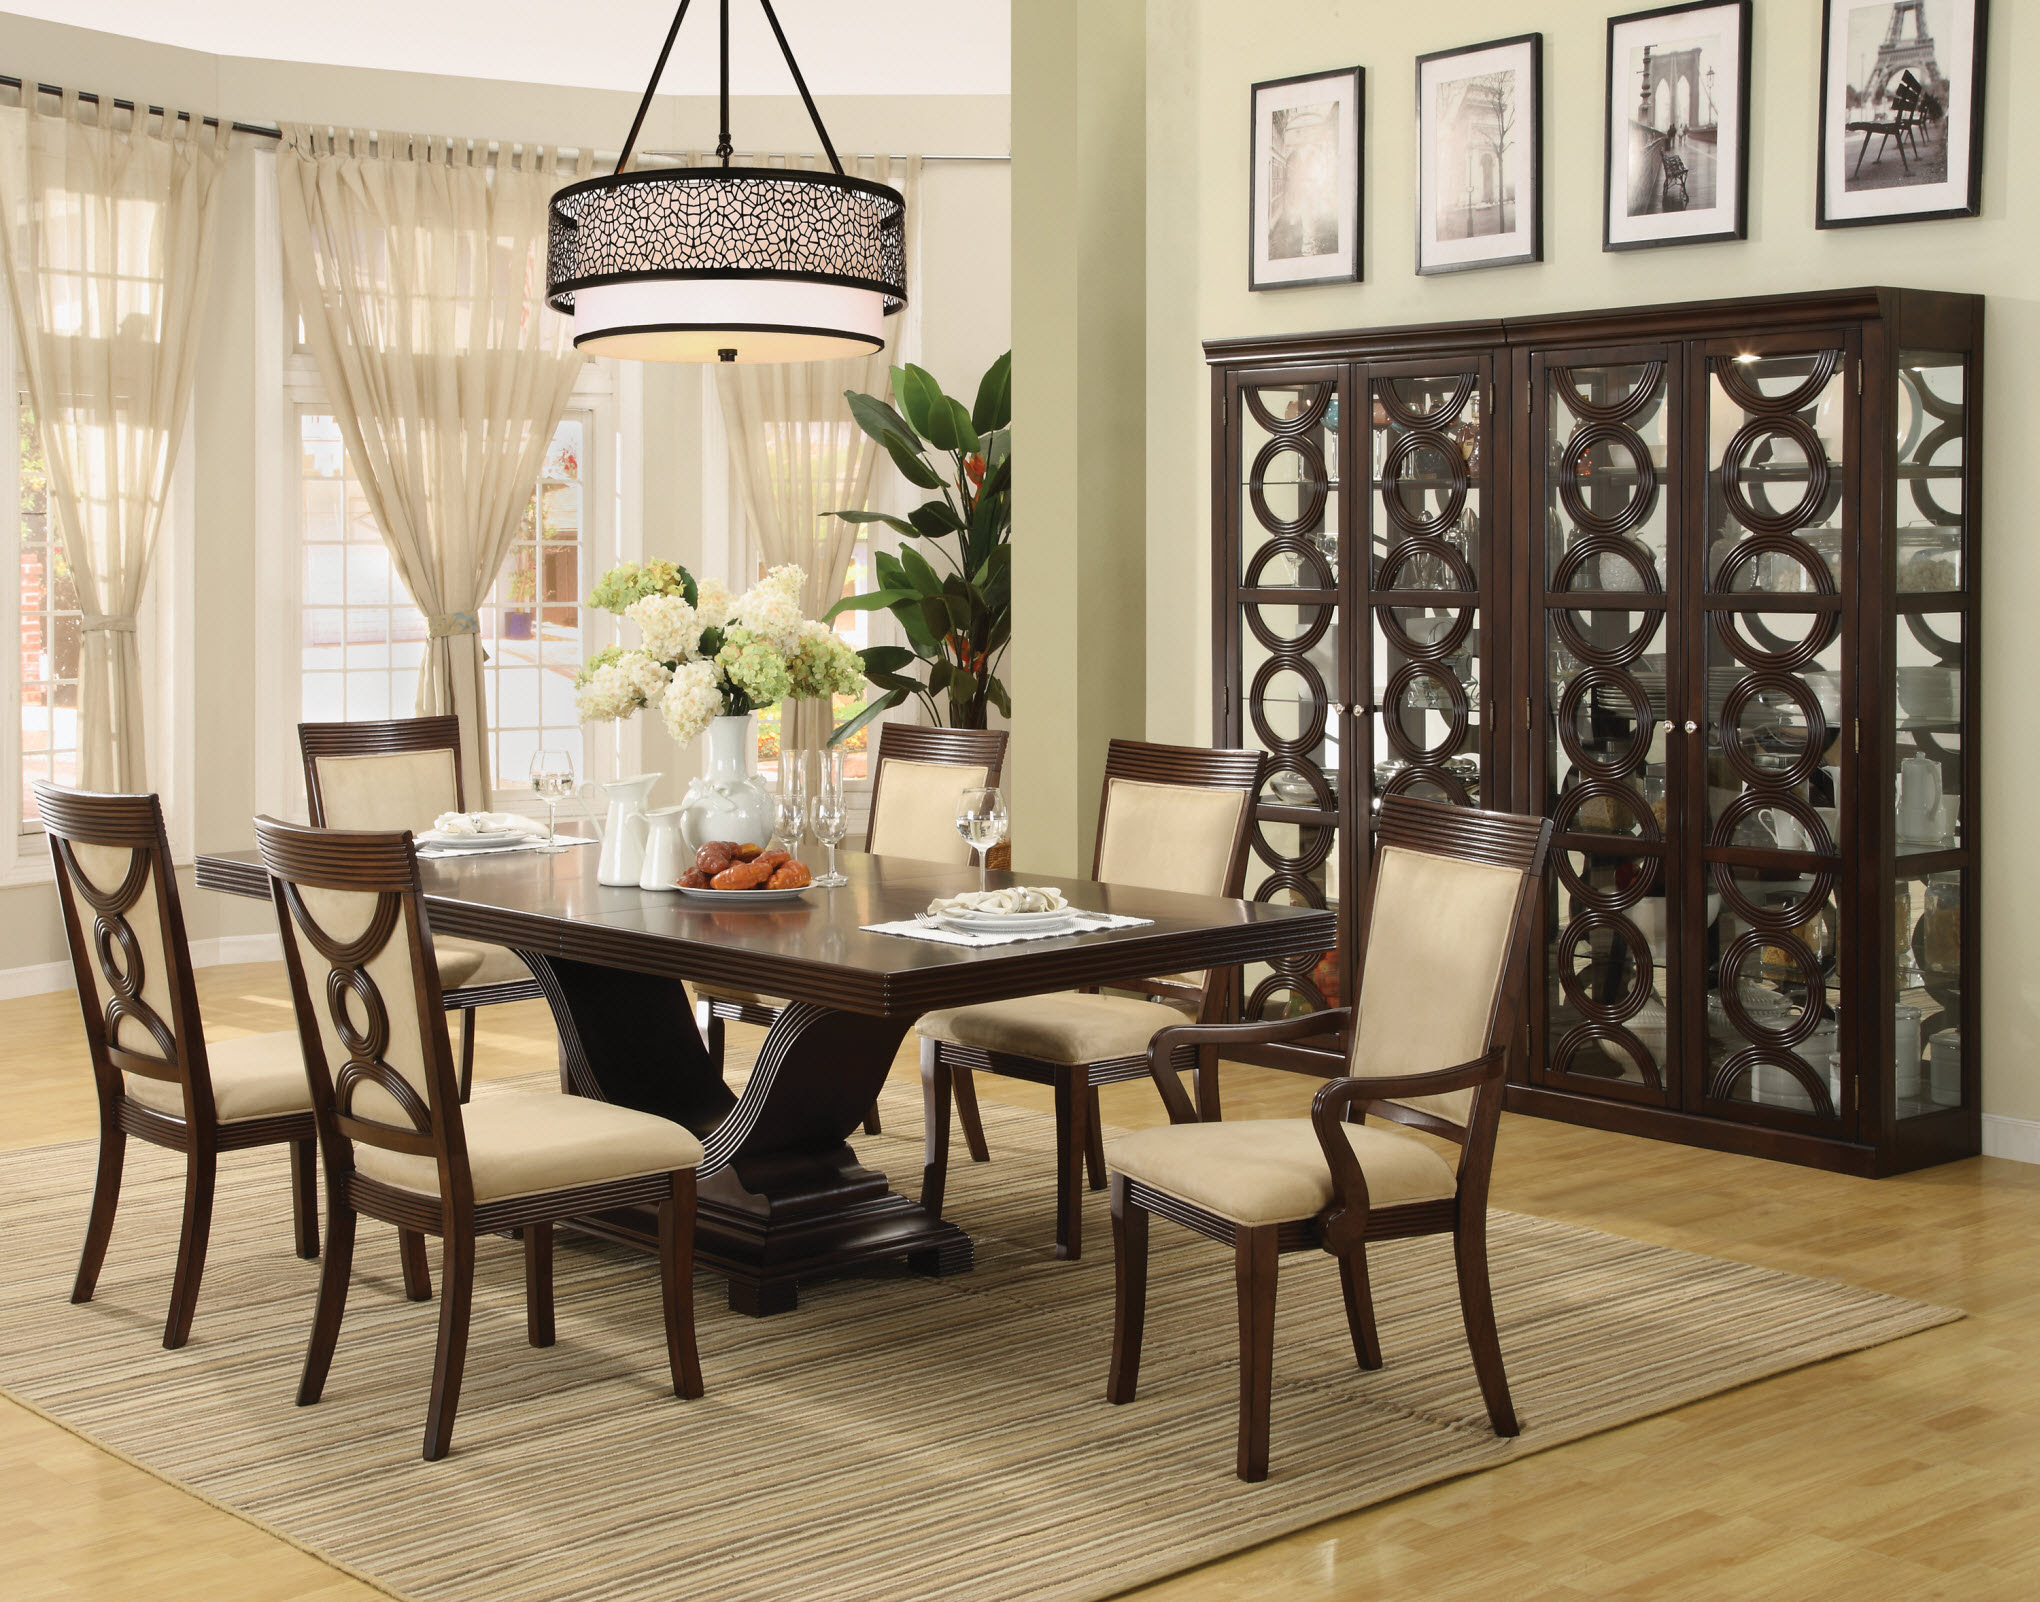 Small Round Dining Table Decorating Ideas from lh4.googleusercontent.com